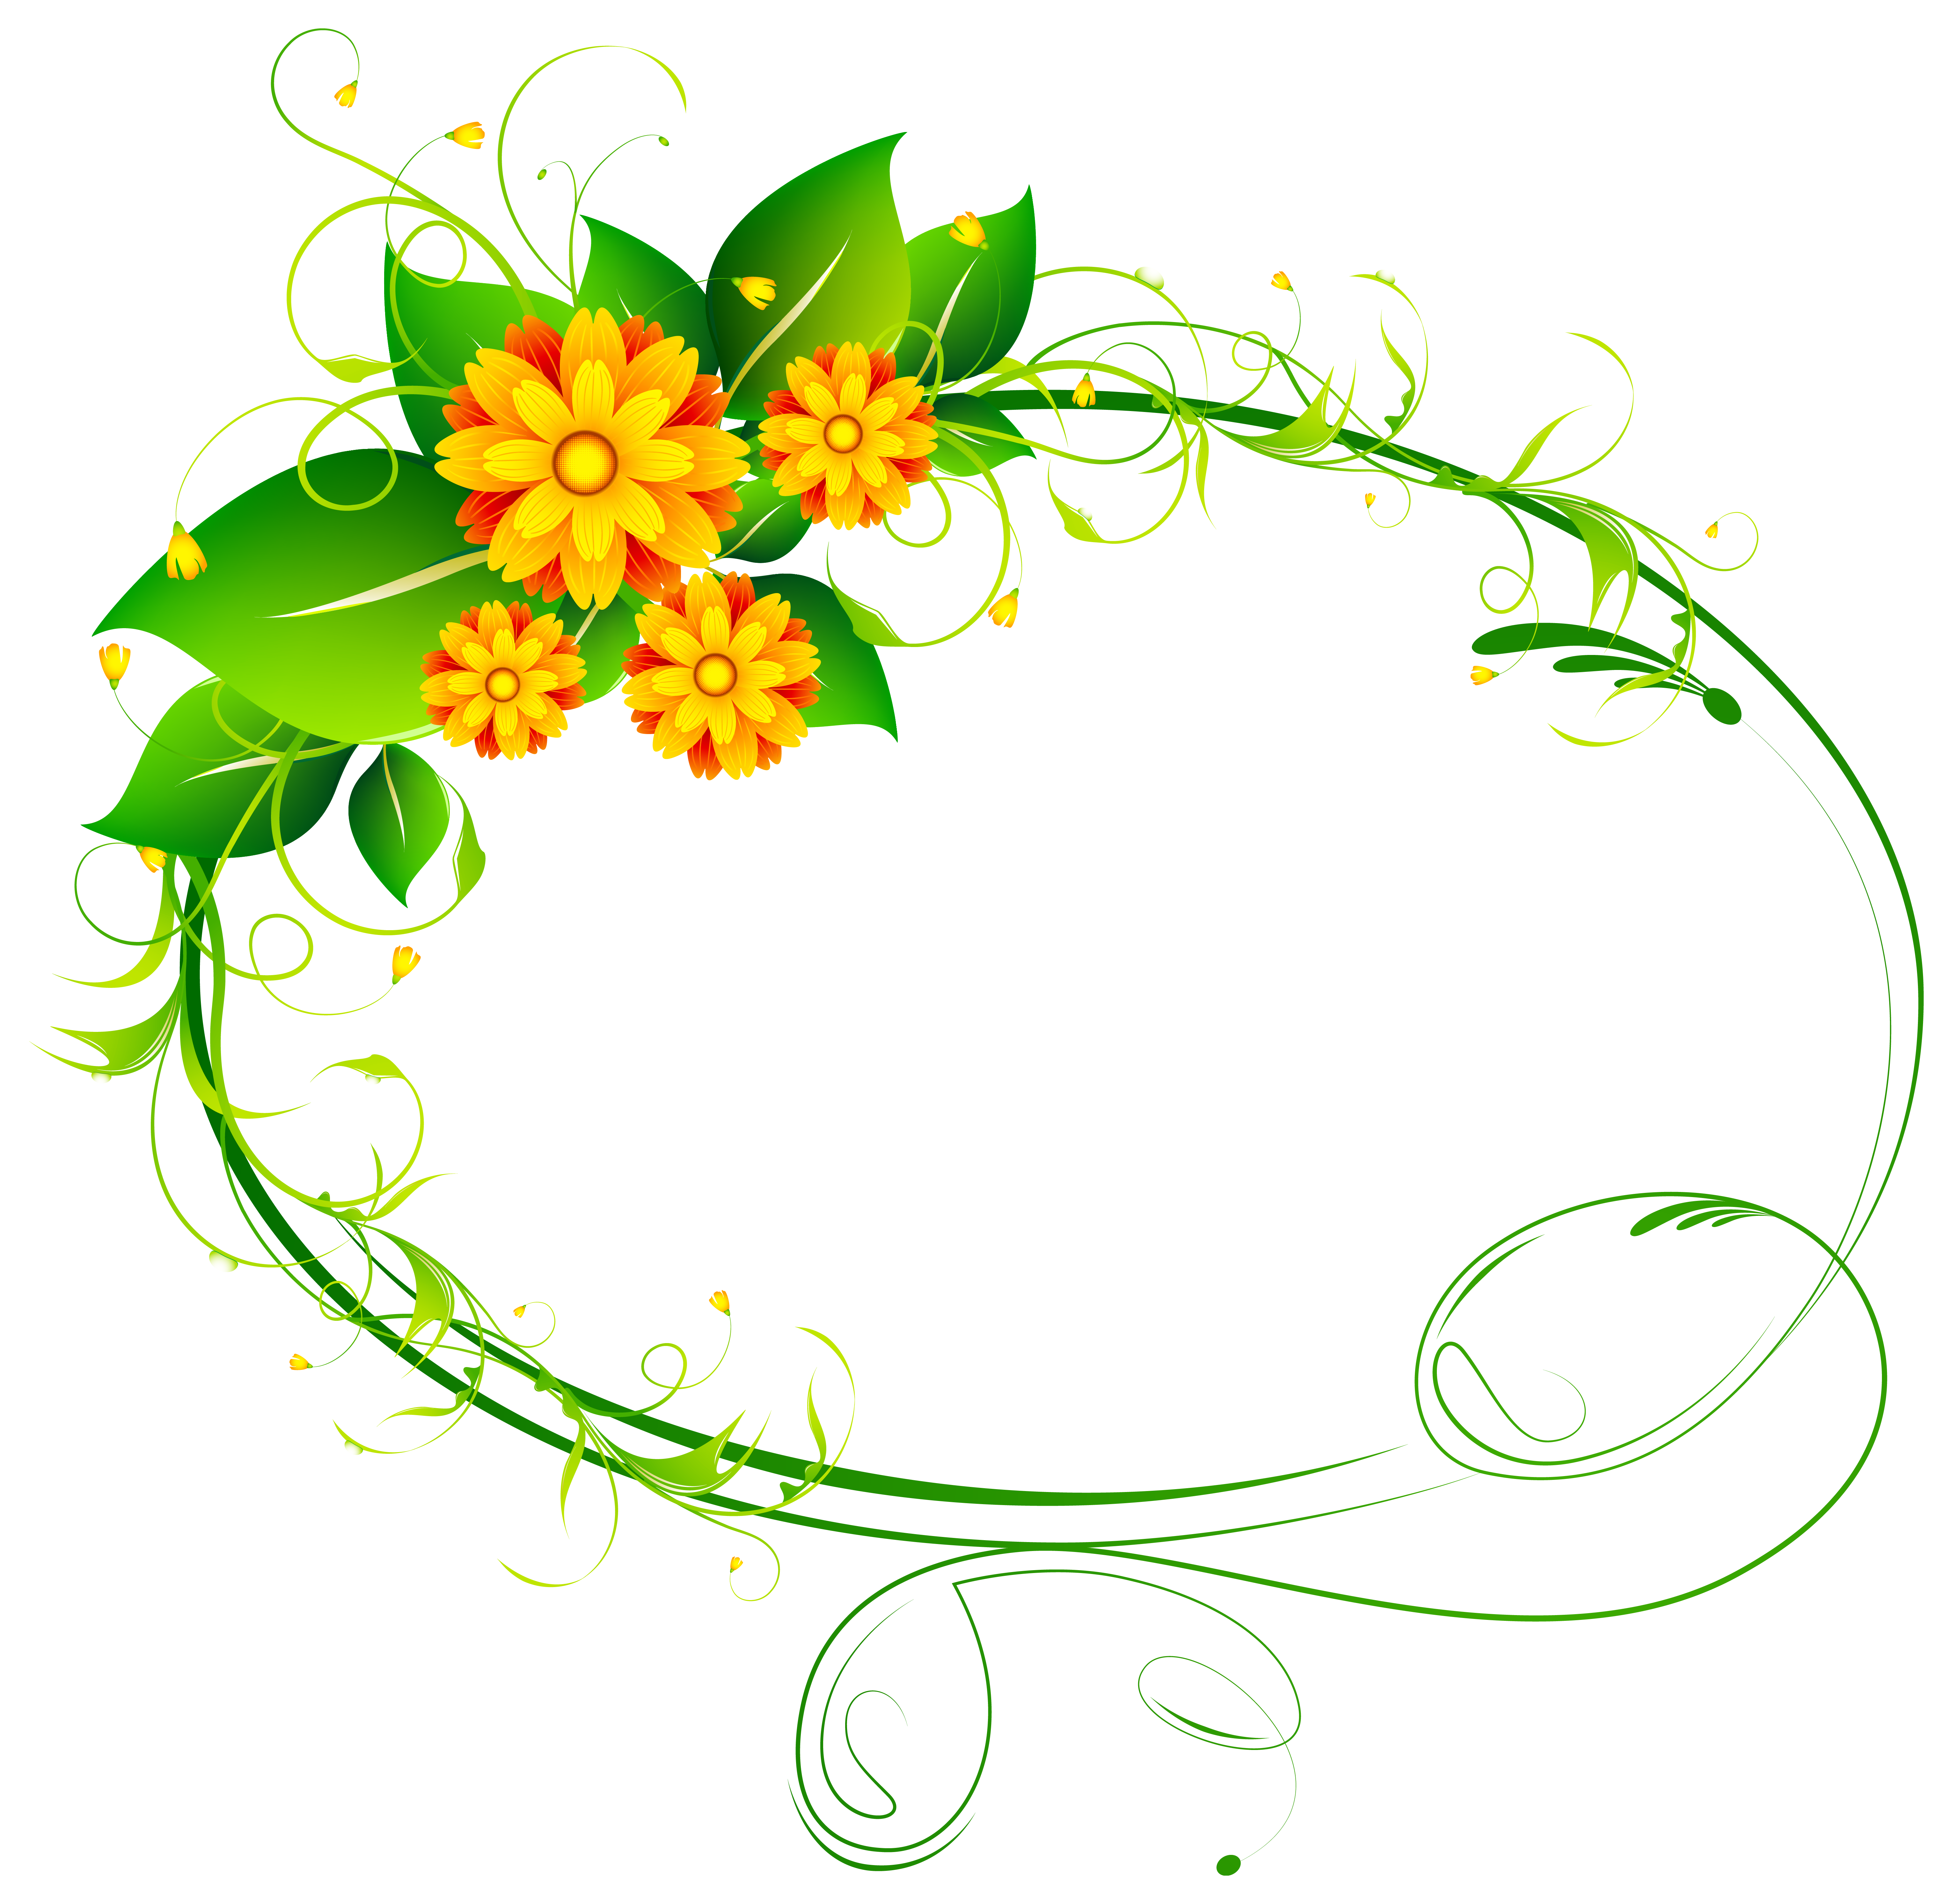 Vines clipart archway. Floral oval decor png